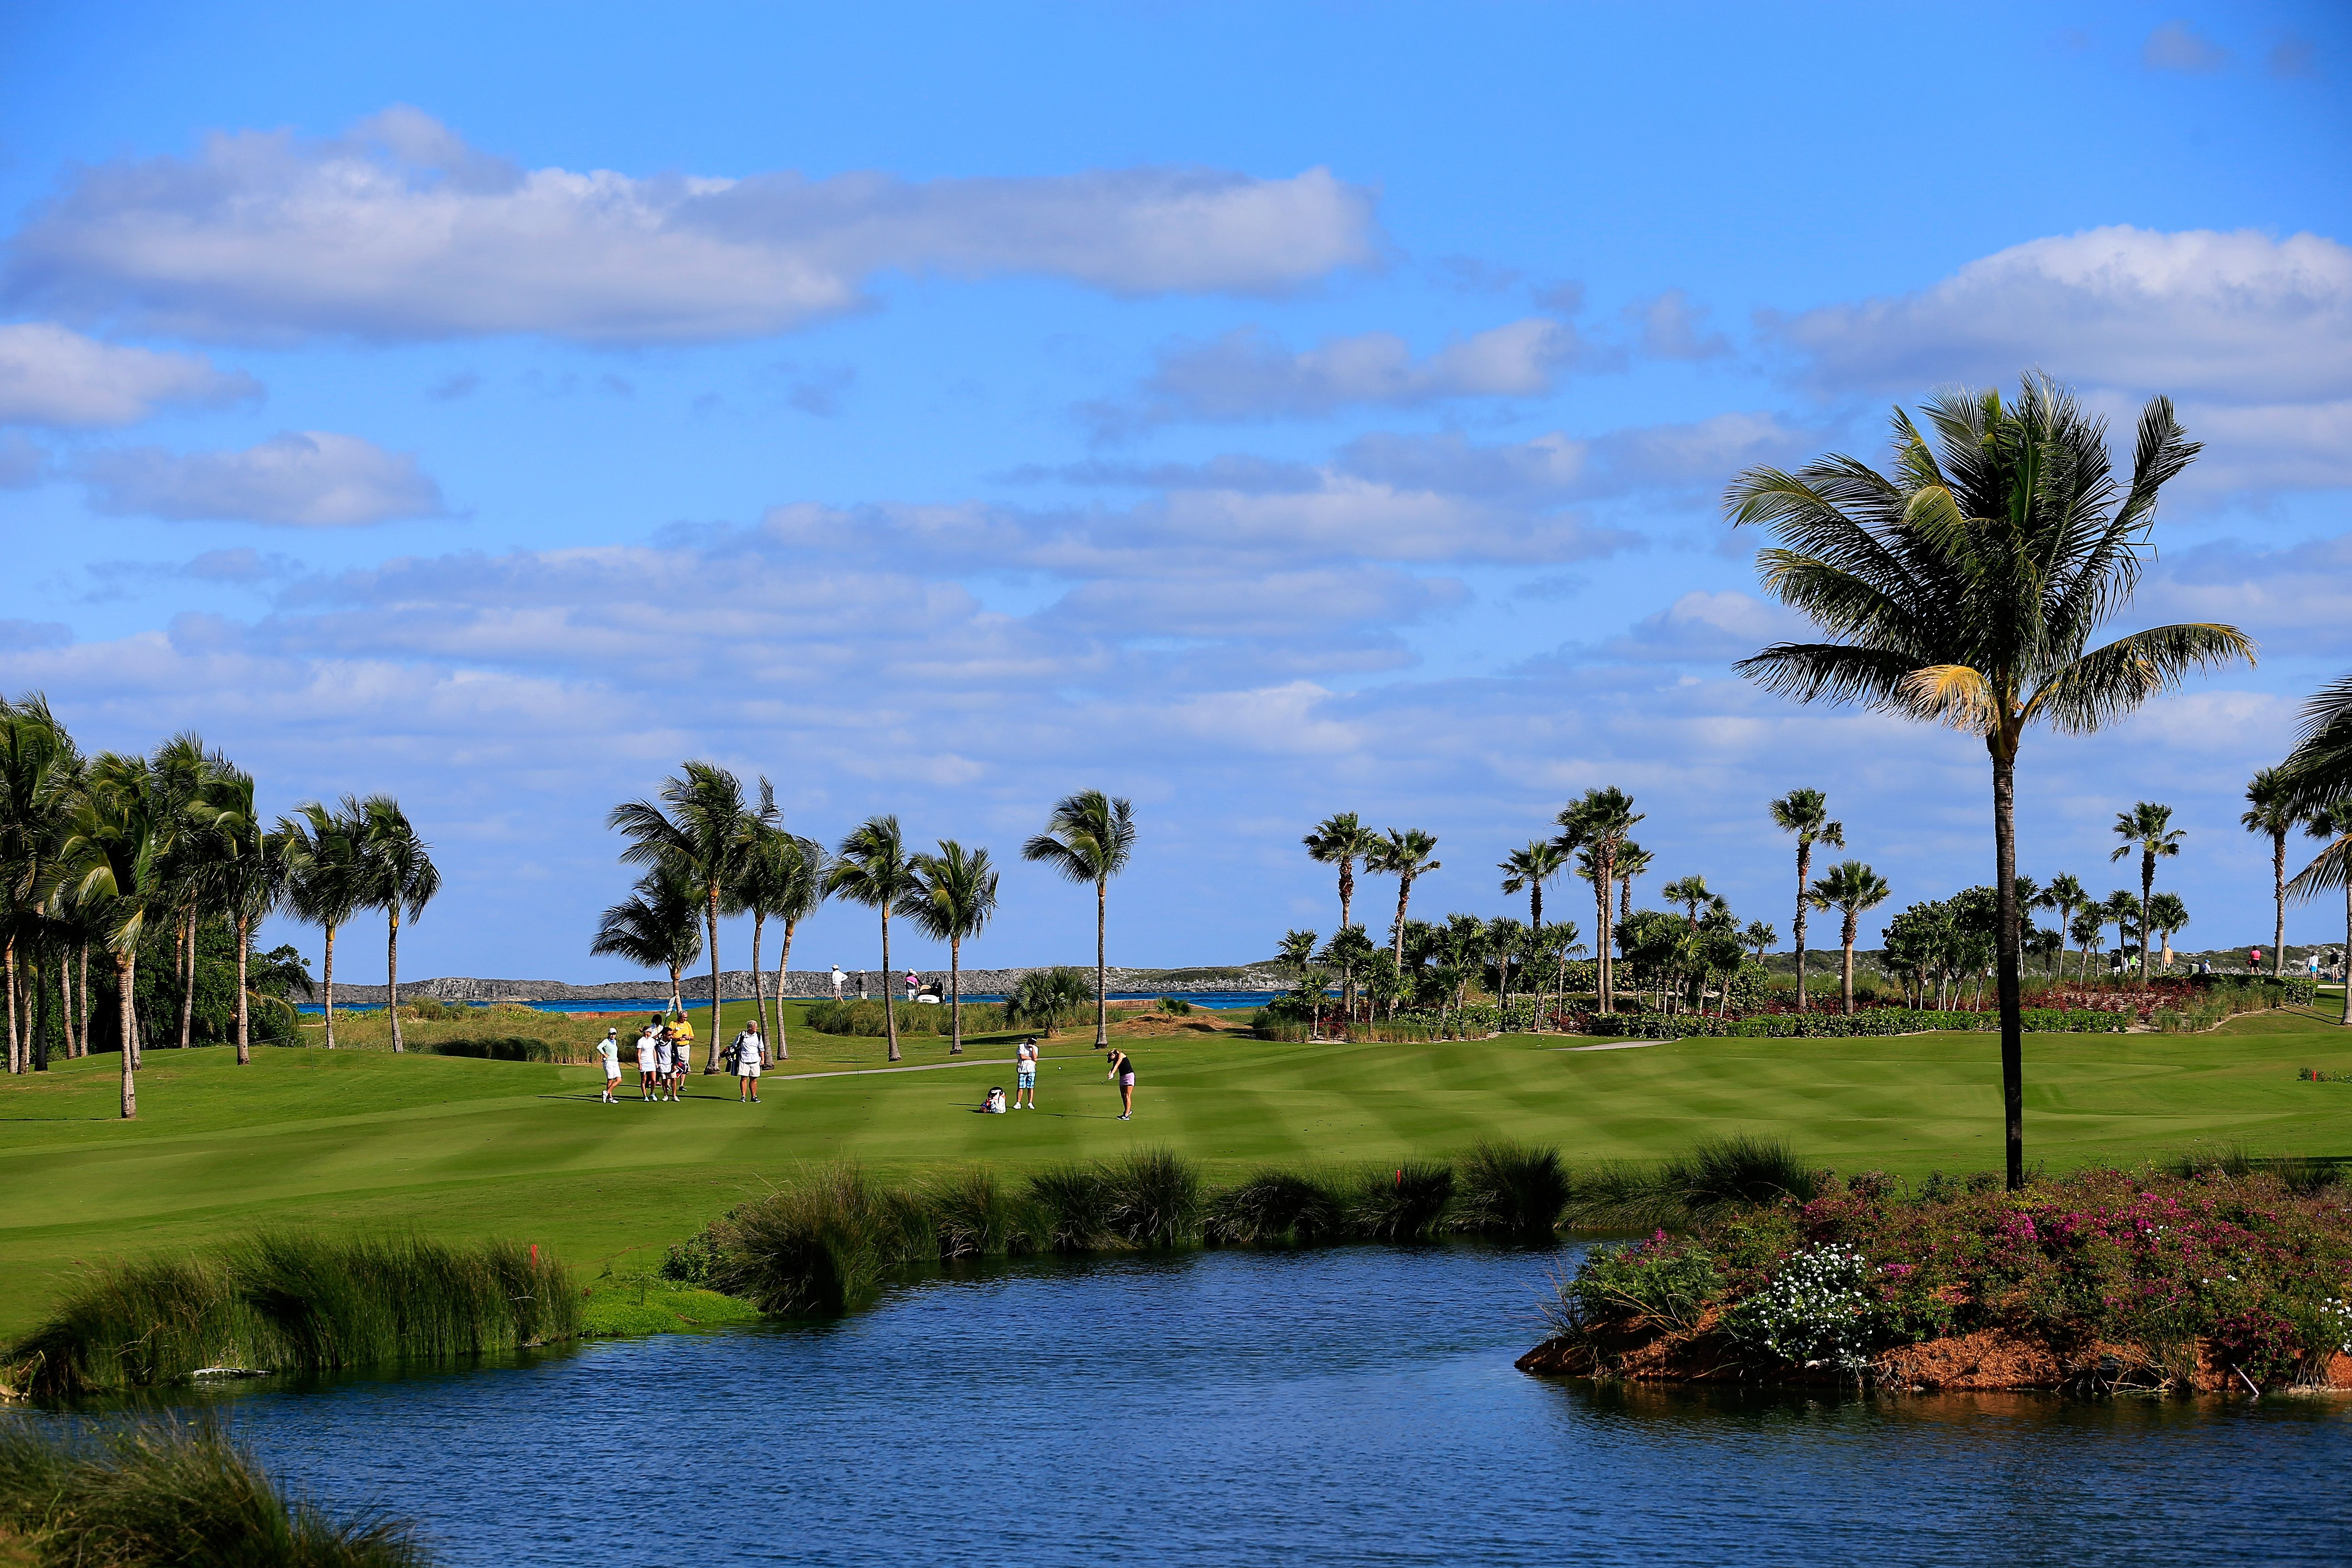 Golfers plays the ninth hole during round one of the Pure Silk Bahamas LPGA Classic at the Ocean Club course in Paradise Island, Bahamas.